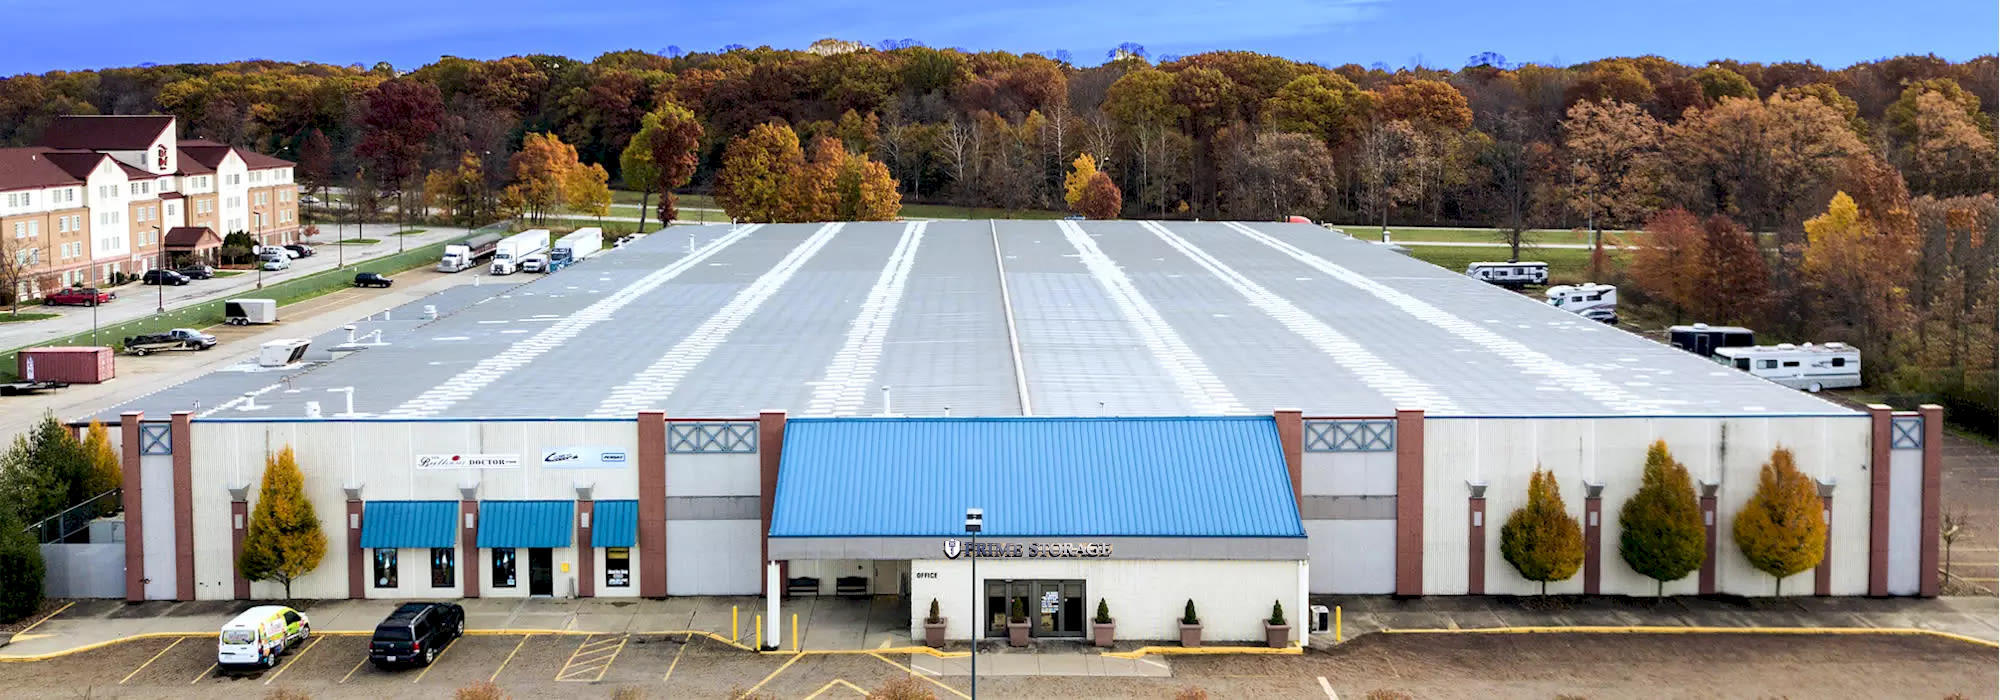 Prime Storage in Boardman, OH